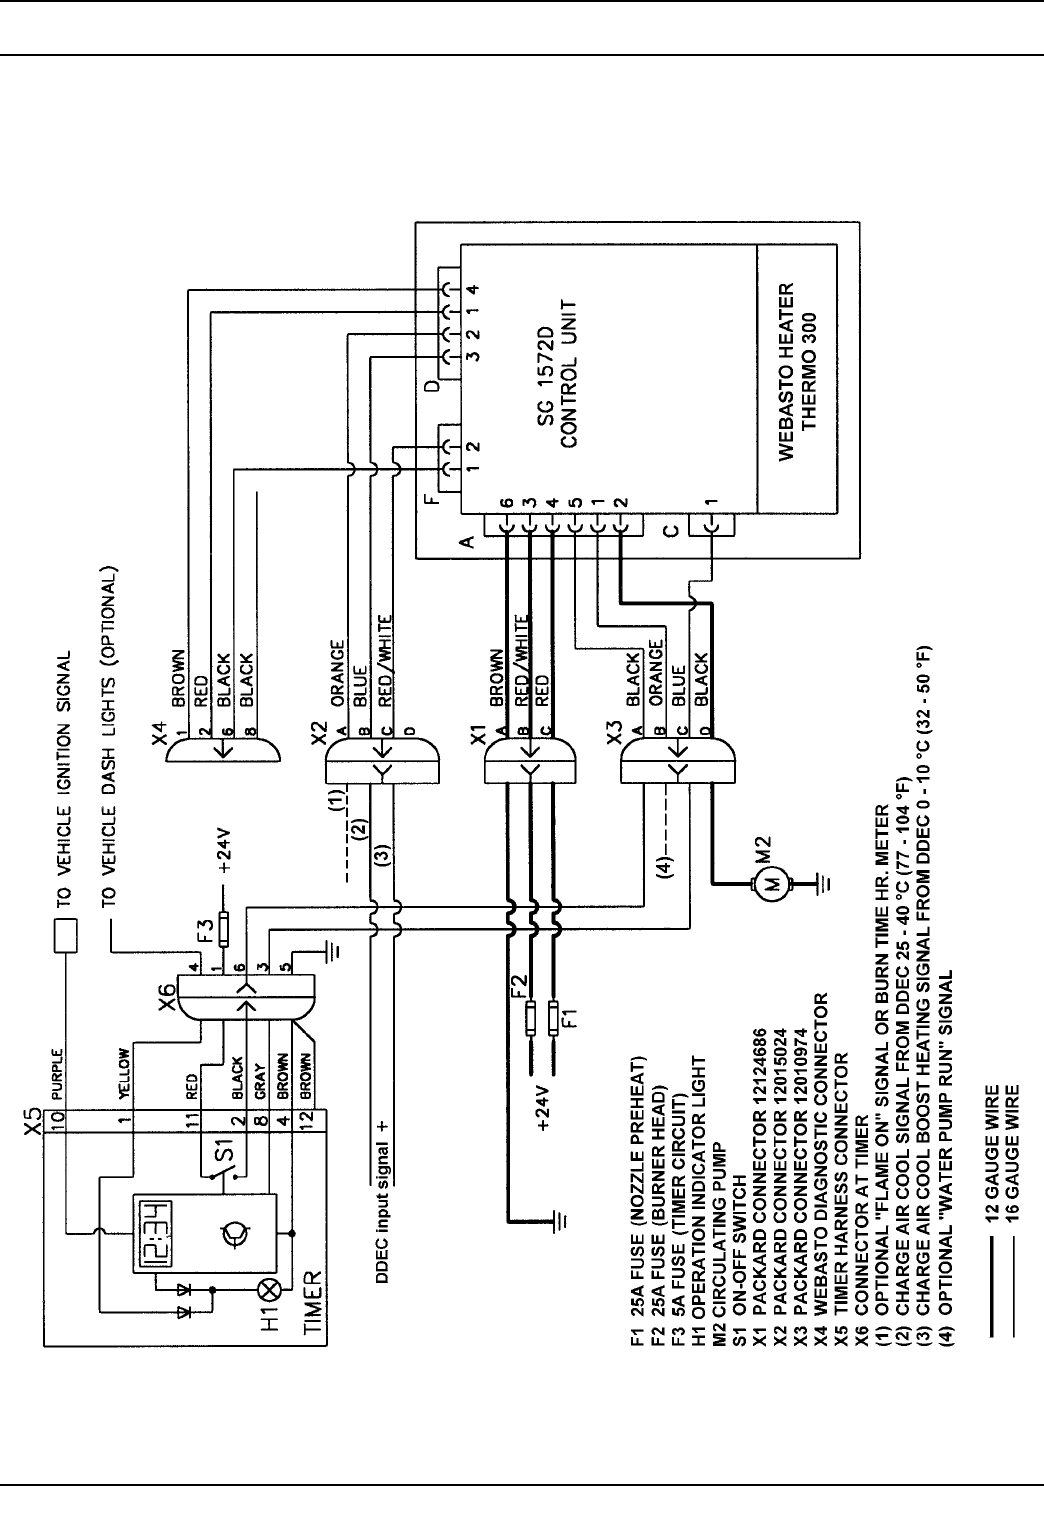 f91e2960 aa6d 4f21 bc08 2b271b9de9c1 bg19 page 25 of webasto water heater 300 102 user guide manualsonline com webasto heater wiring diagram at webbmarketing.co